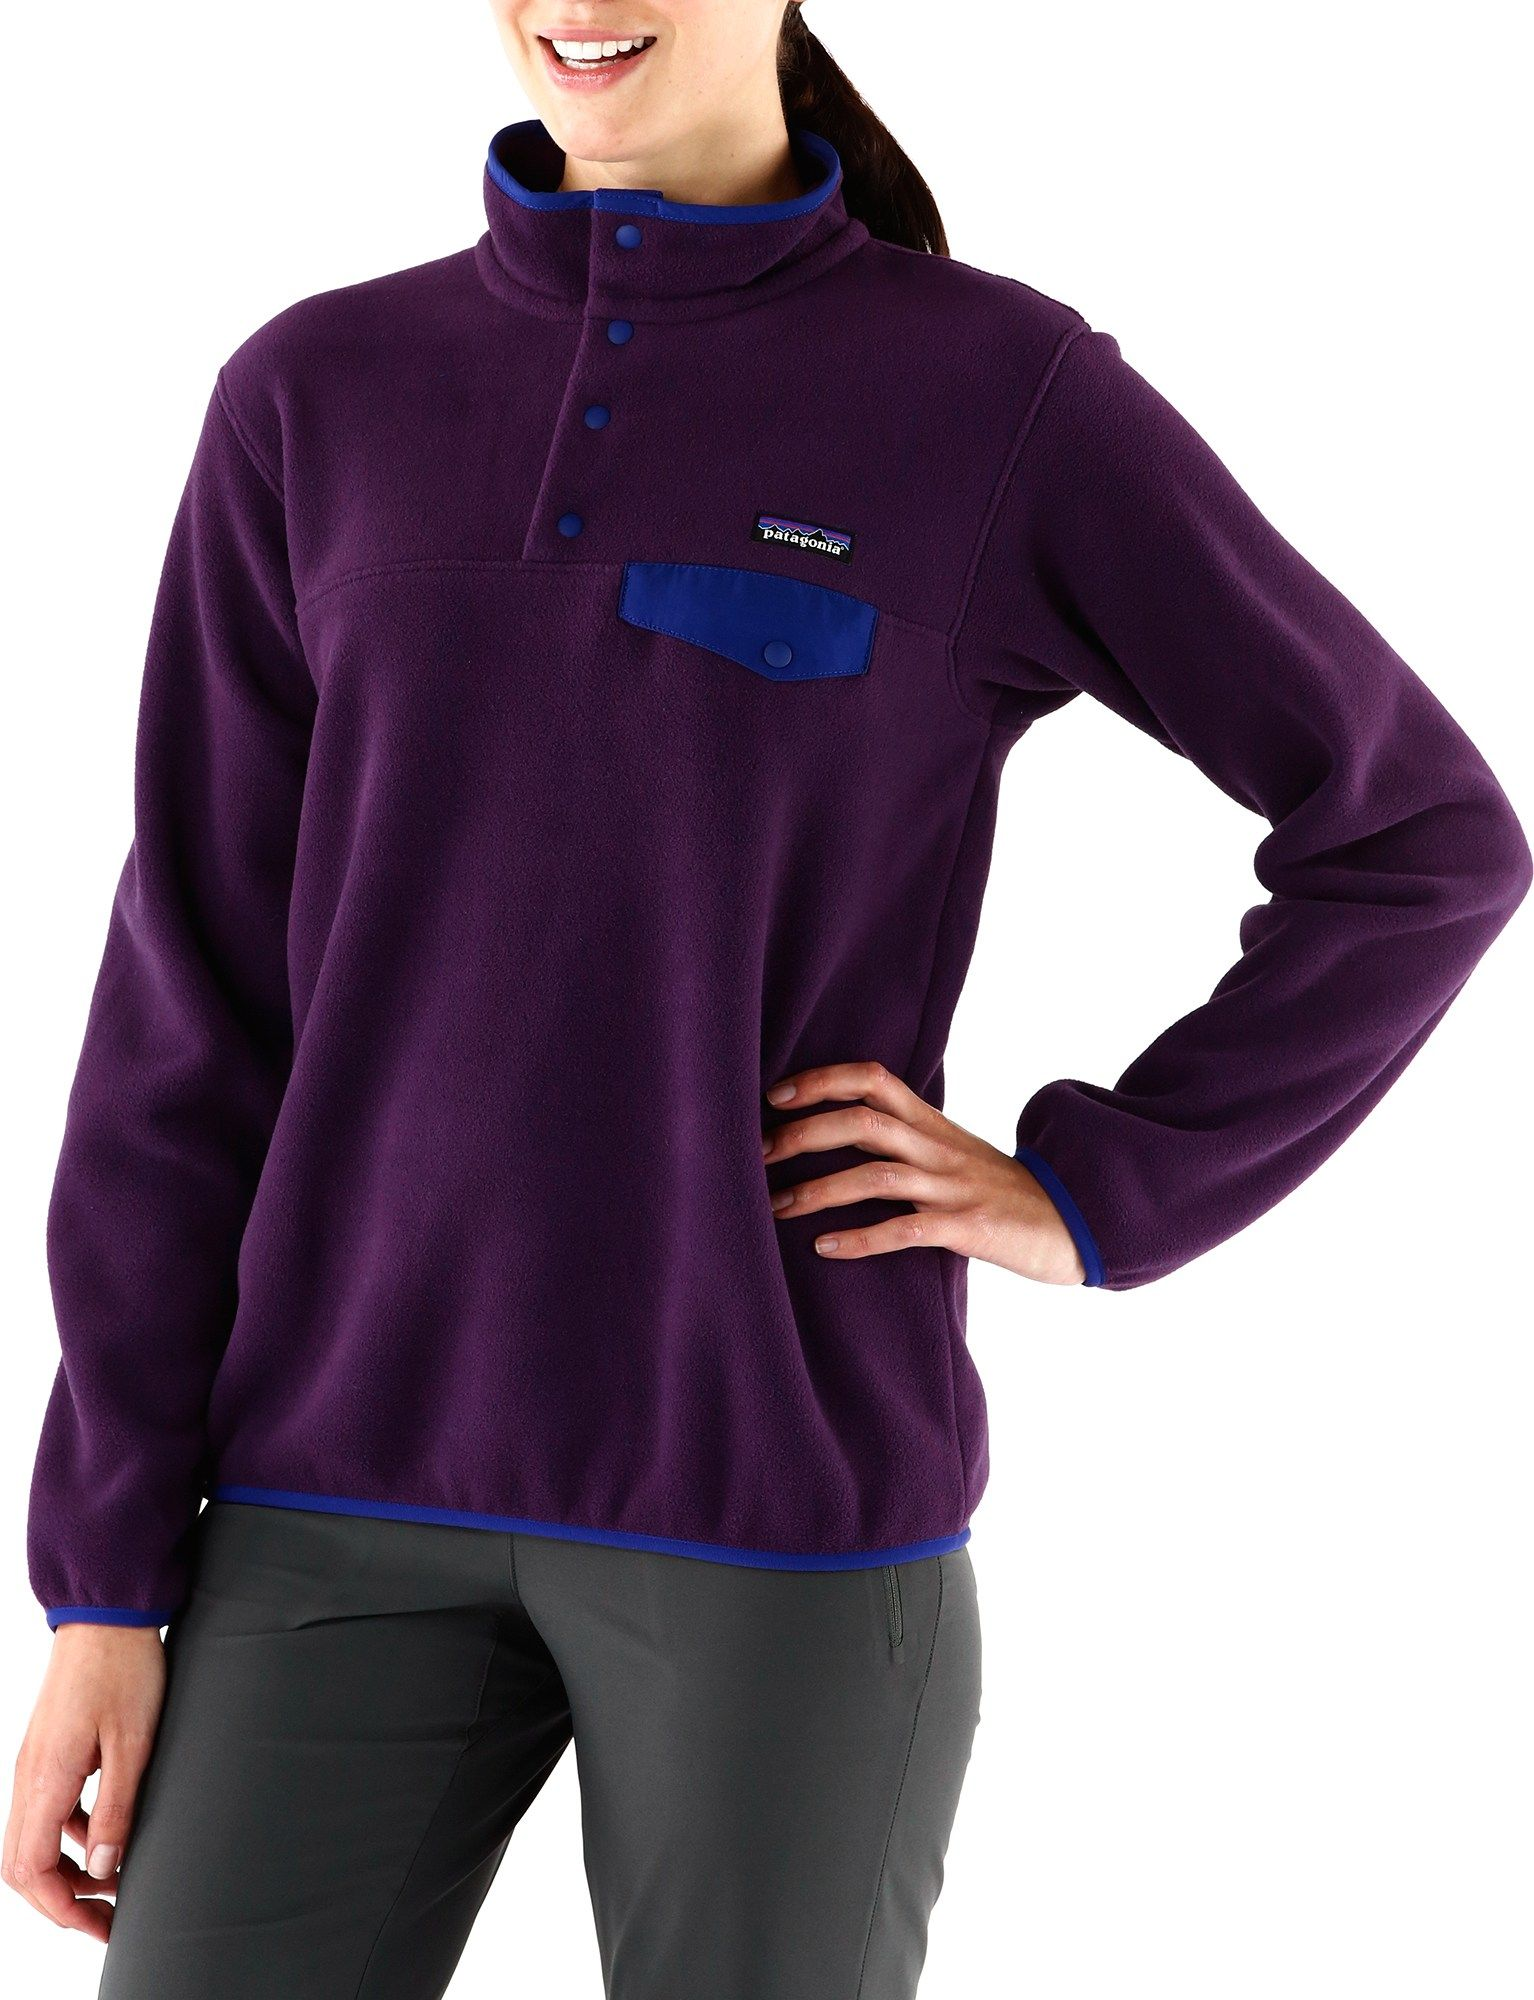 Patagonia fleece pullover. | Gifts Under $100 | Pinterest ...